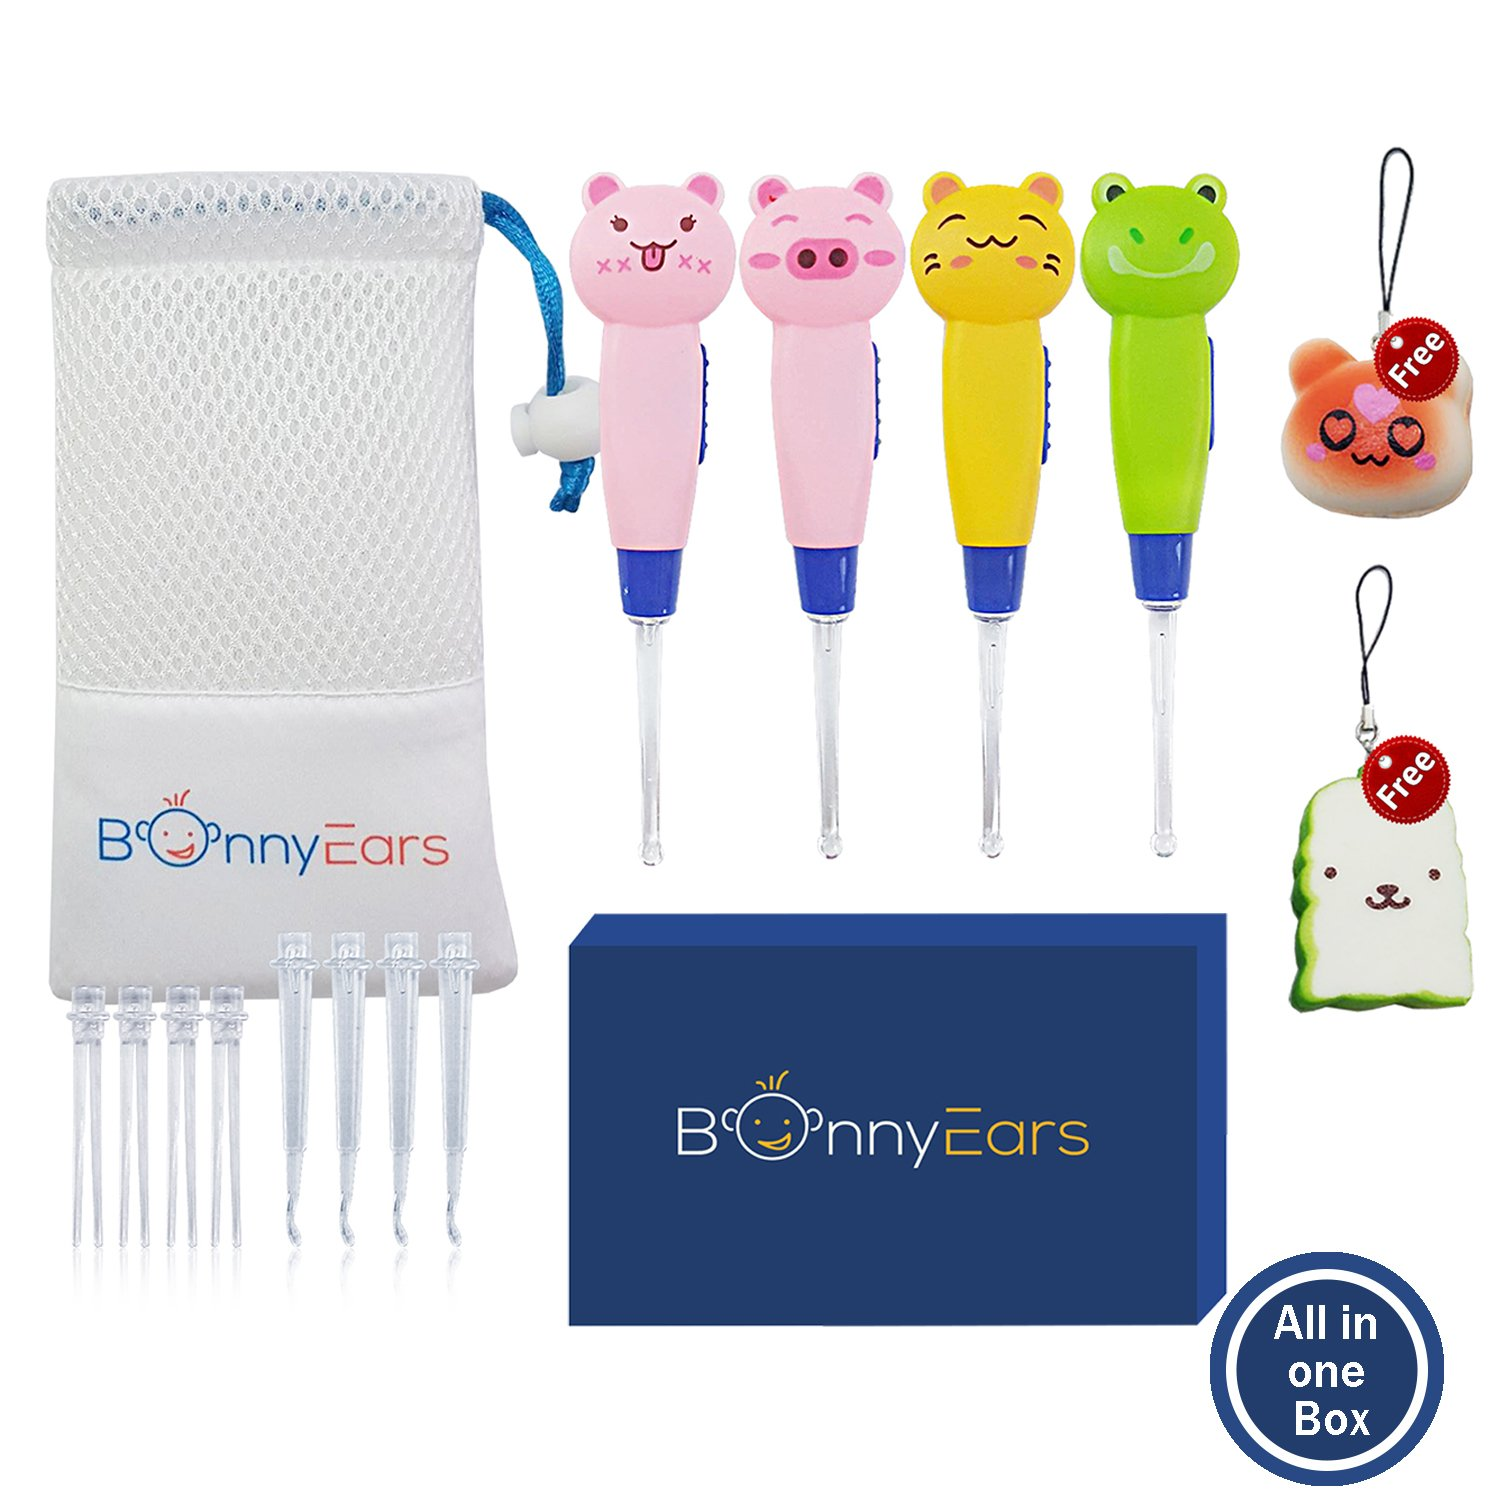 Ear Wax Removal Tool for Kids - Toddlers, Infants, Baby and Adult by BonnyEars | 4 Pieces | Earwax Remover Kit with Led Light Cleaner | Ear Pick Spoon Curette Tweezers Cleaning